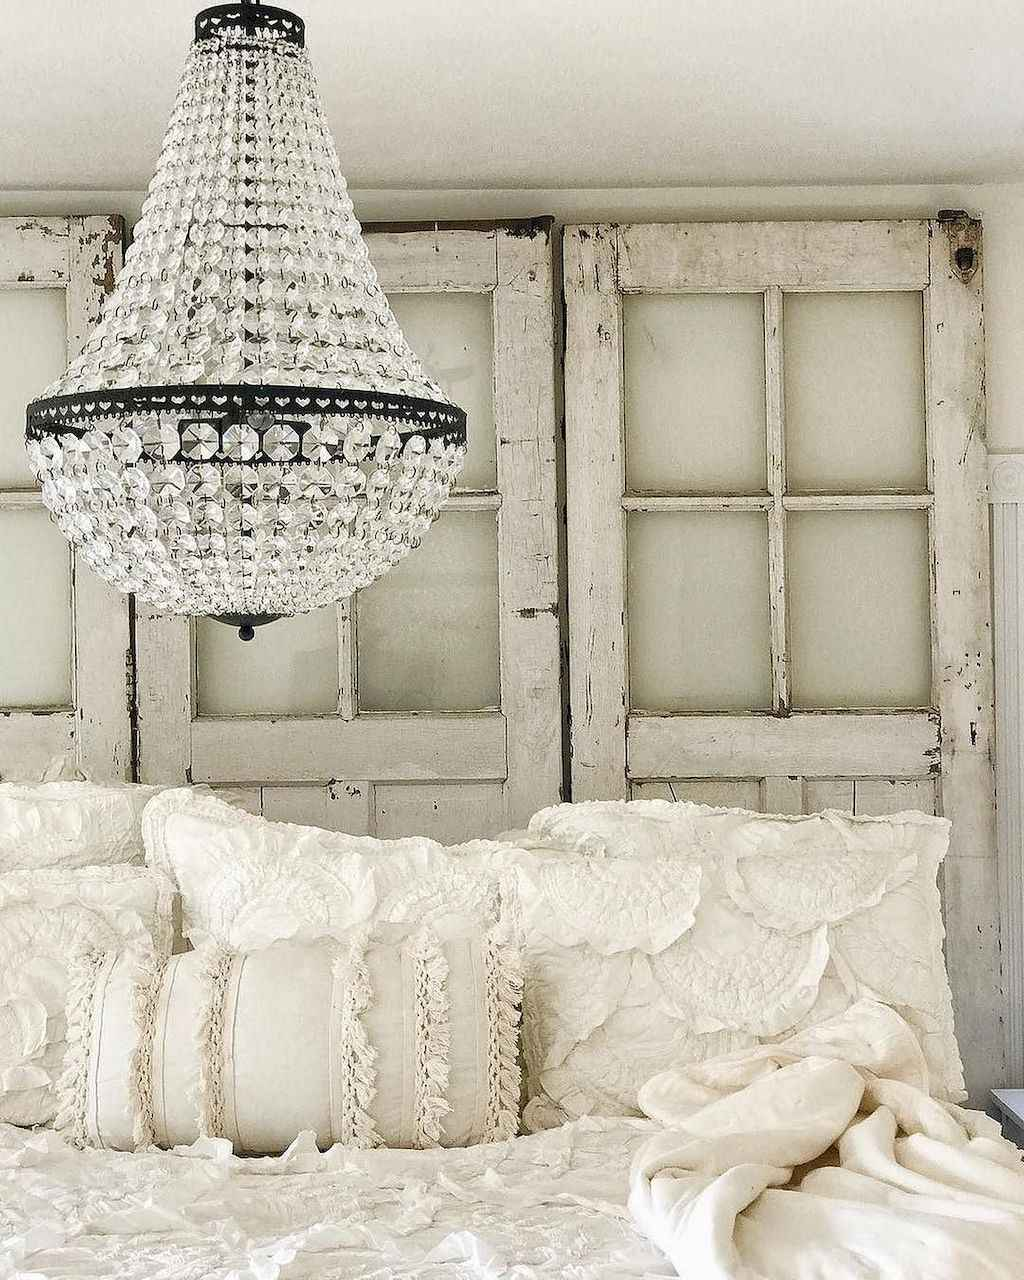 Cozy apartment decorating ideas on a budget (26)